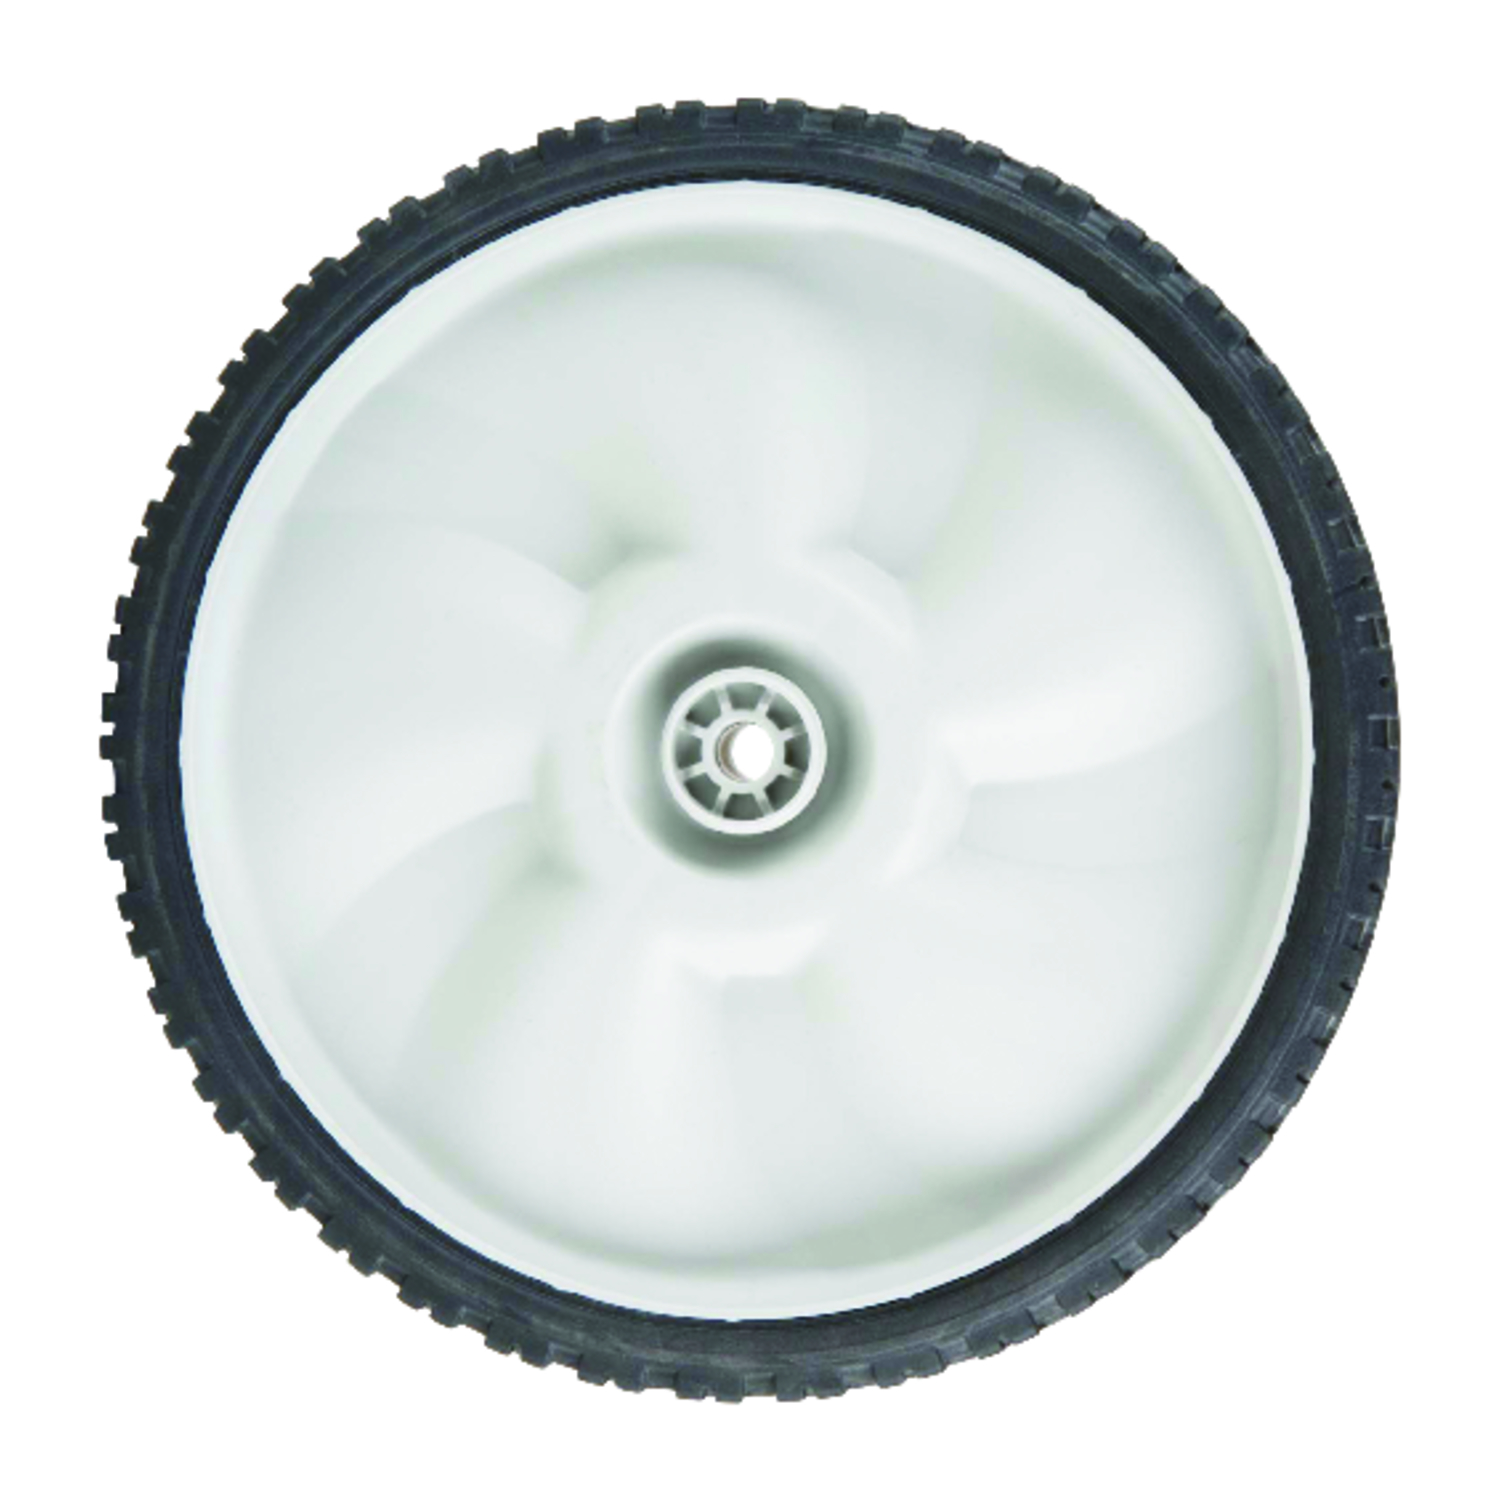 Arnold  11 in. Dia. x 1.75 in. W Plastic  Lawn Mower Replacement Wheel  60 lb.